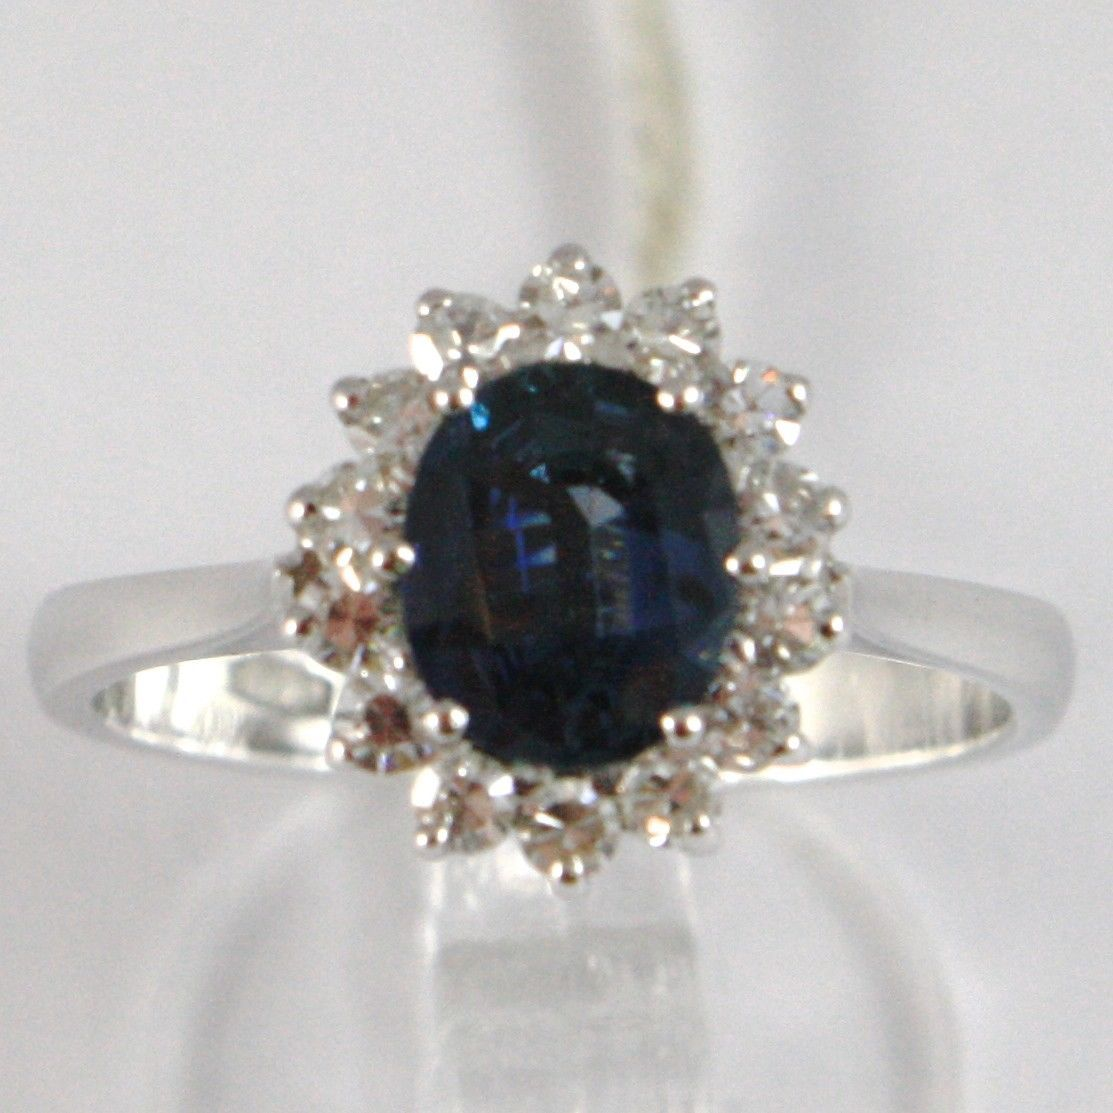 WHITE GOLD RING 750 18K, ROSETTA WITH SAPPHIRE OVAL CT 0.95 AND DIAMONDS CT 0.36